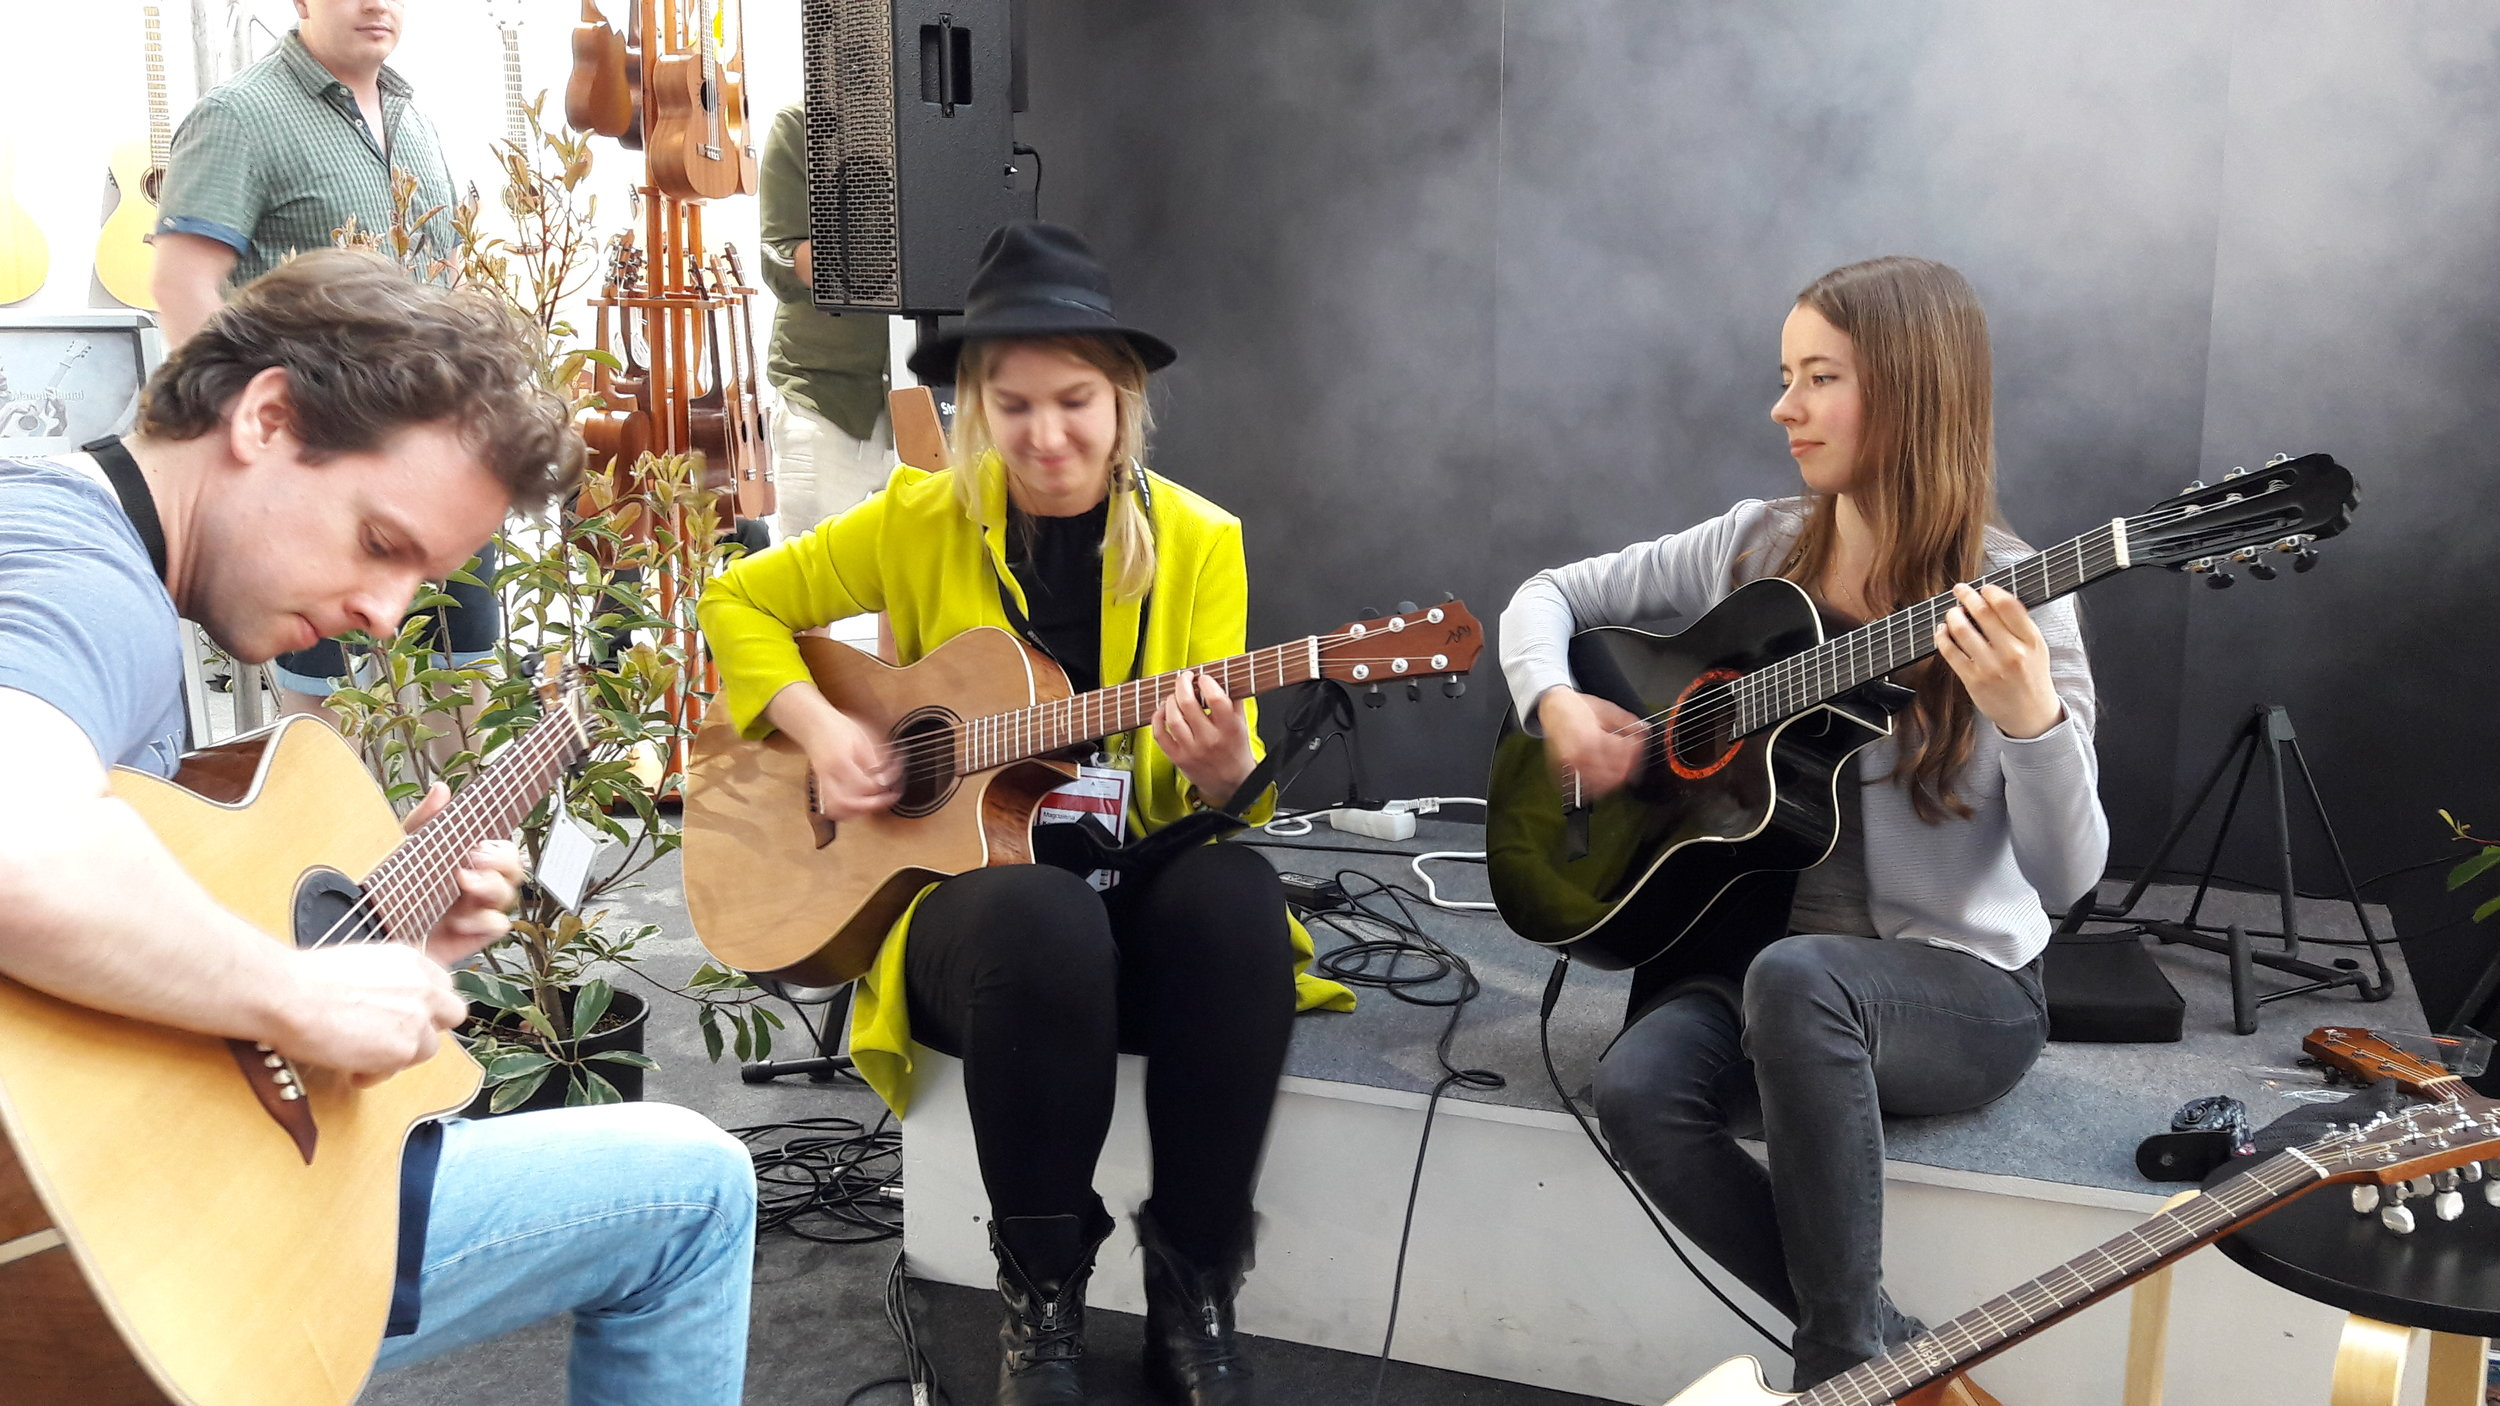 Jamming about, Wim den Herder, Magdalena Kowalczyk and Julia Lange